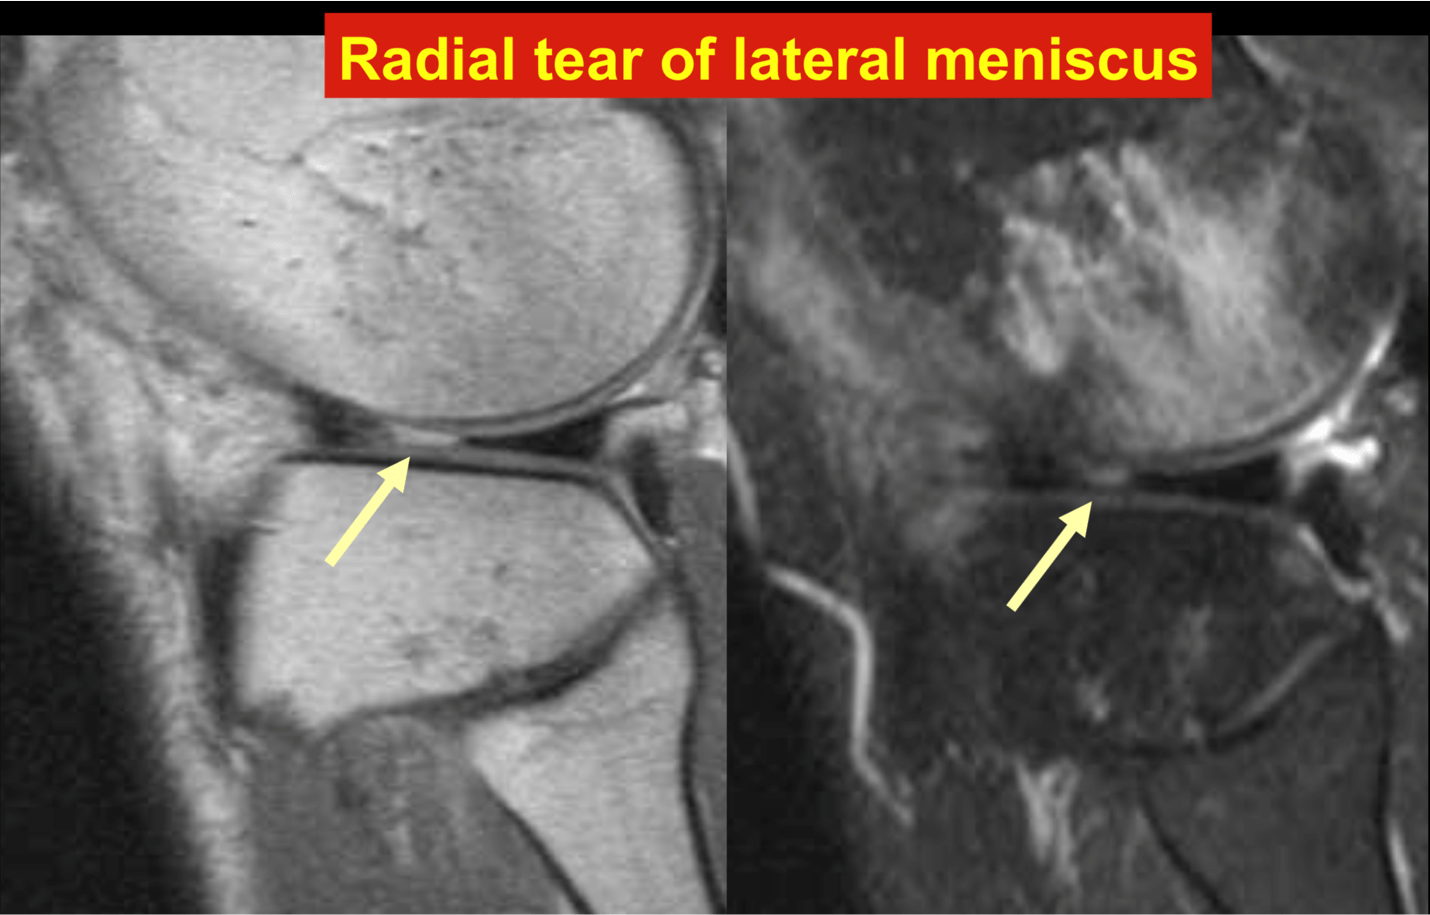 Radial tear of lateral meniscus